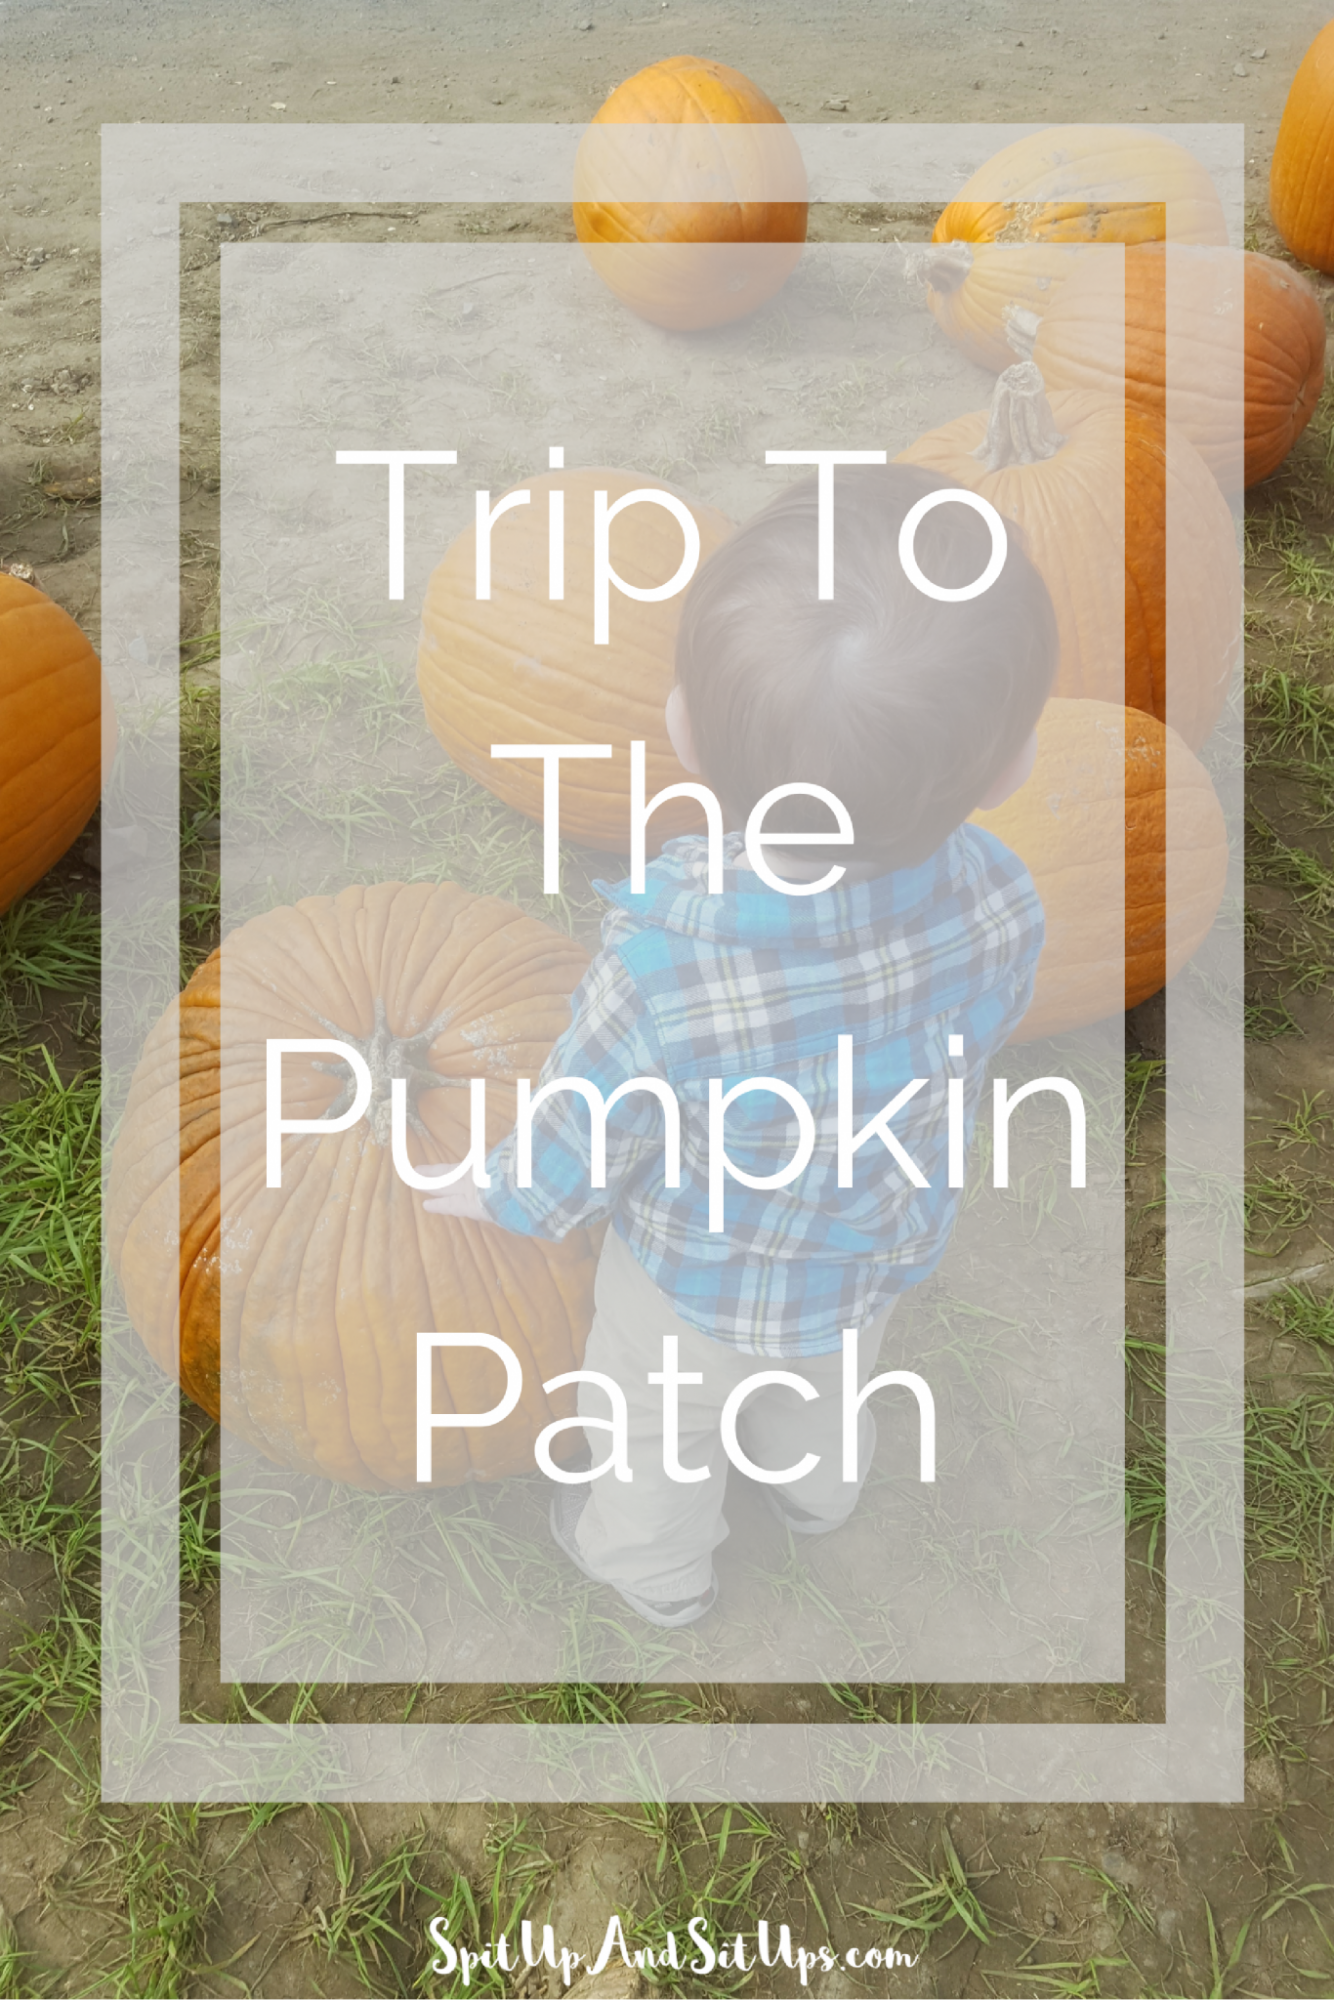 Trip to the pumpkin patch, toddler fun, fun with my toddler, fall fun, fall fun with toddler, pumpkin patch with toddler